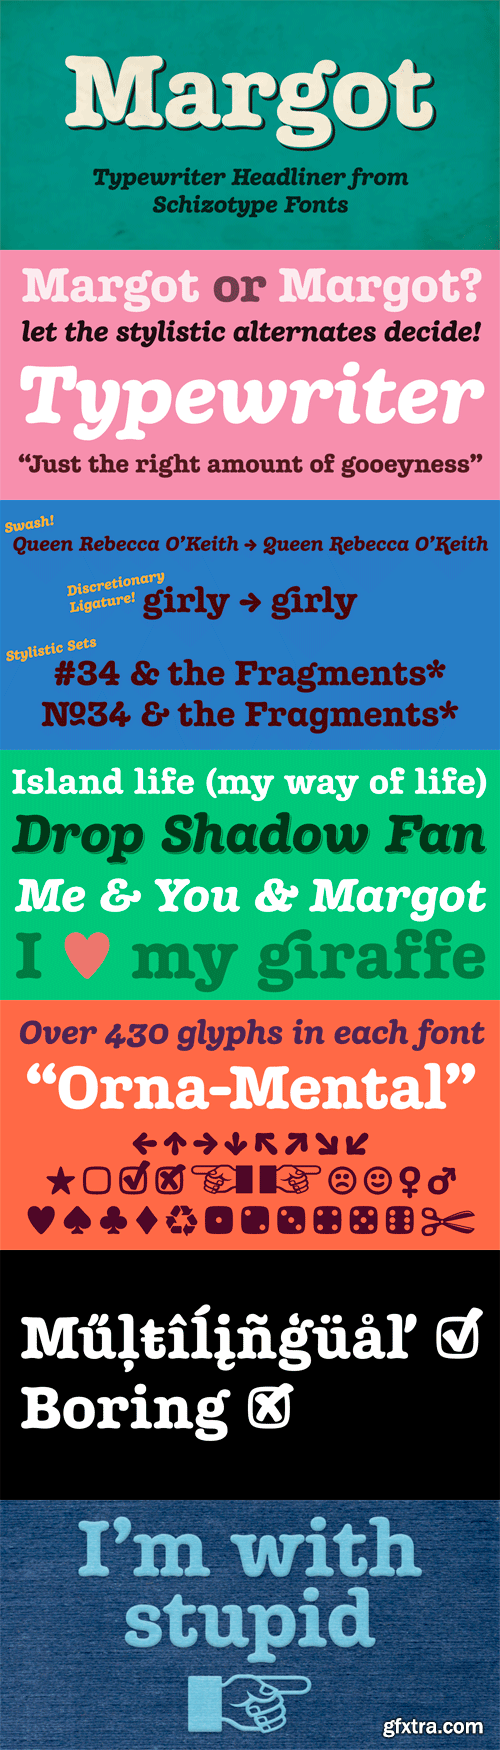 Margot Font Family - 2 Fonts for $50